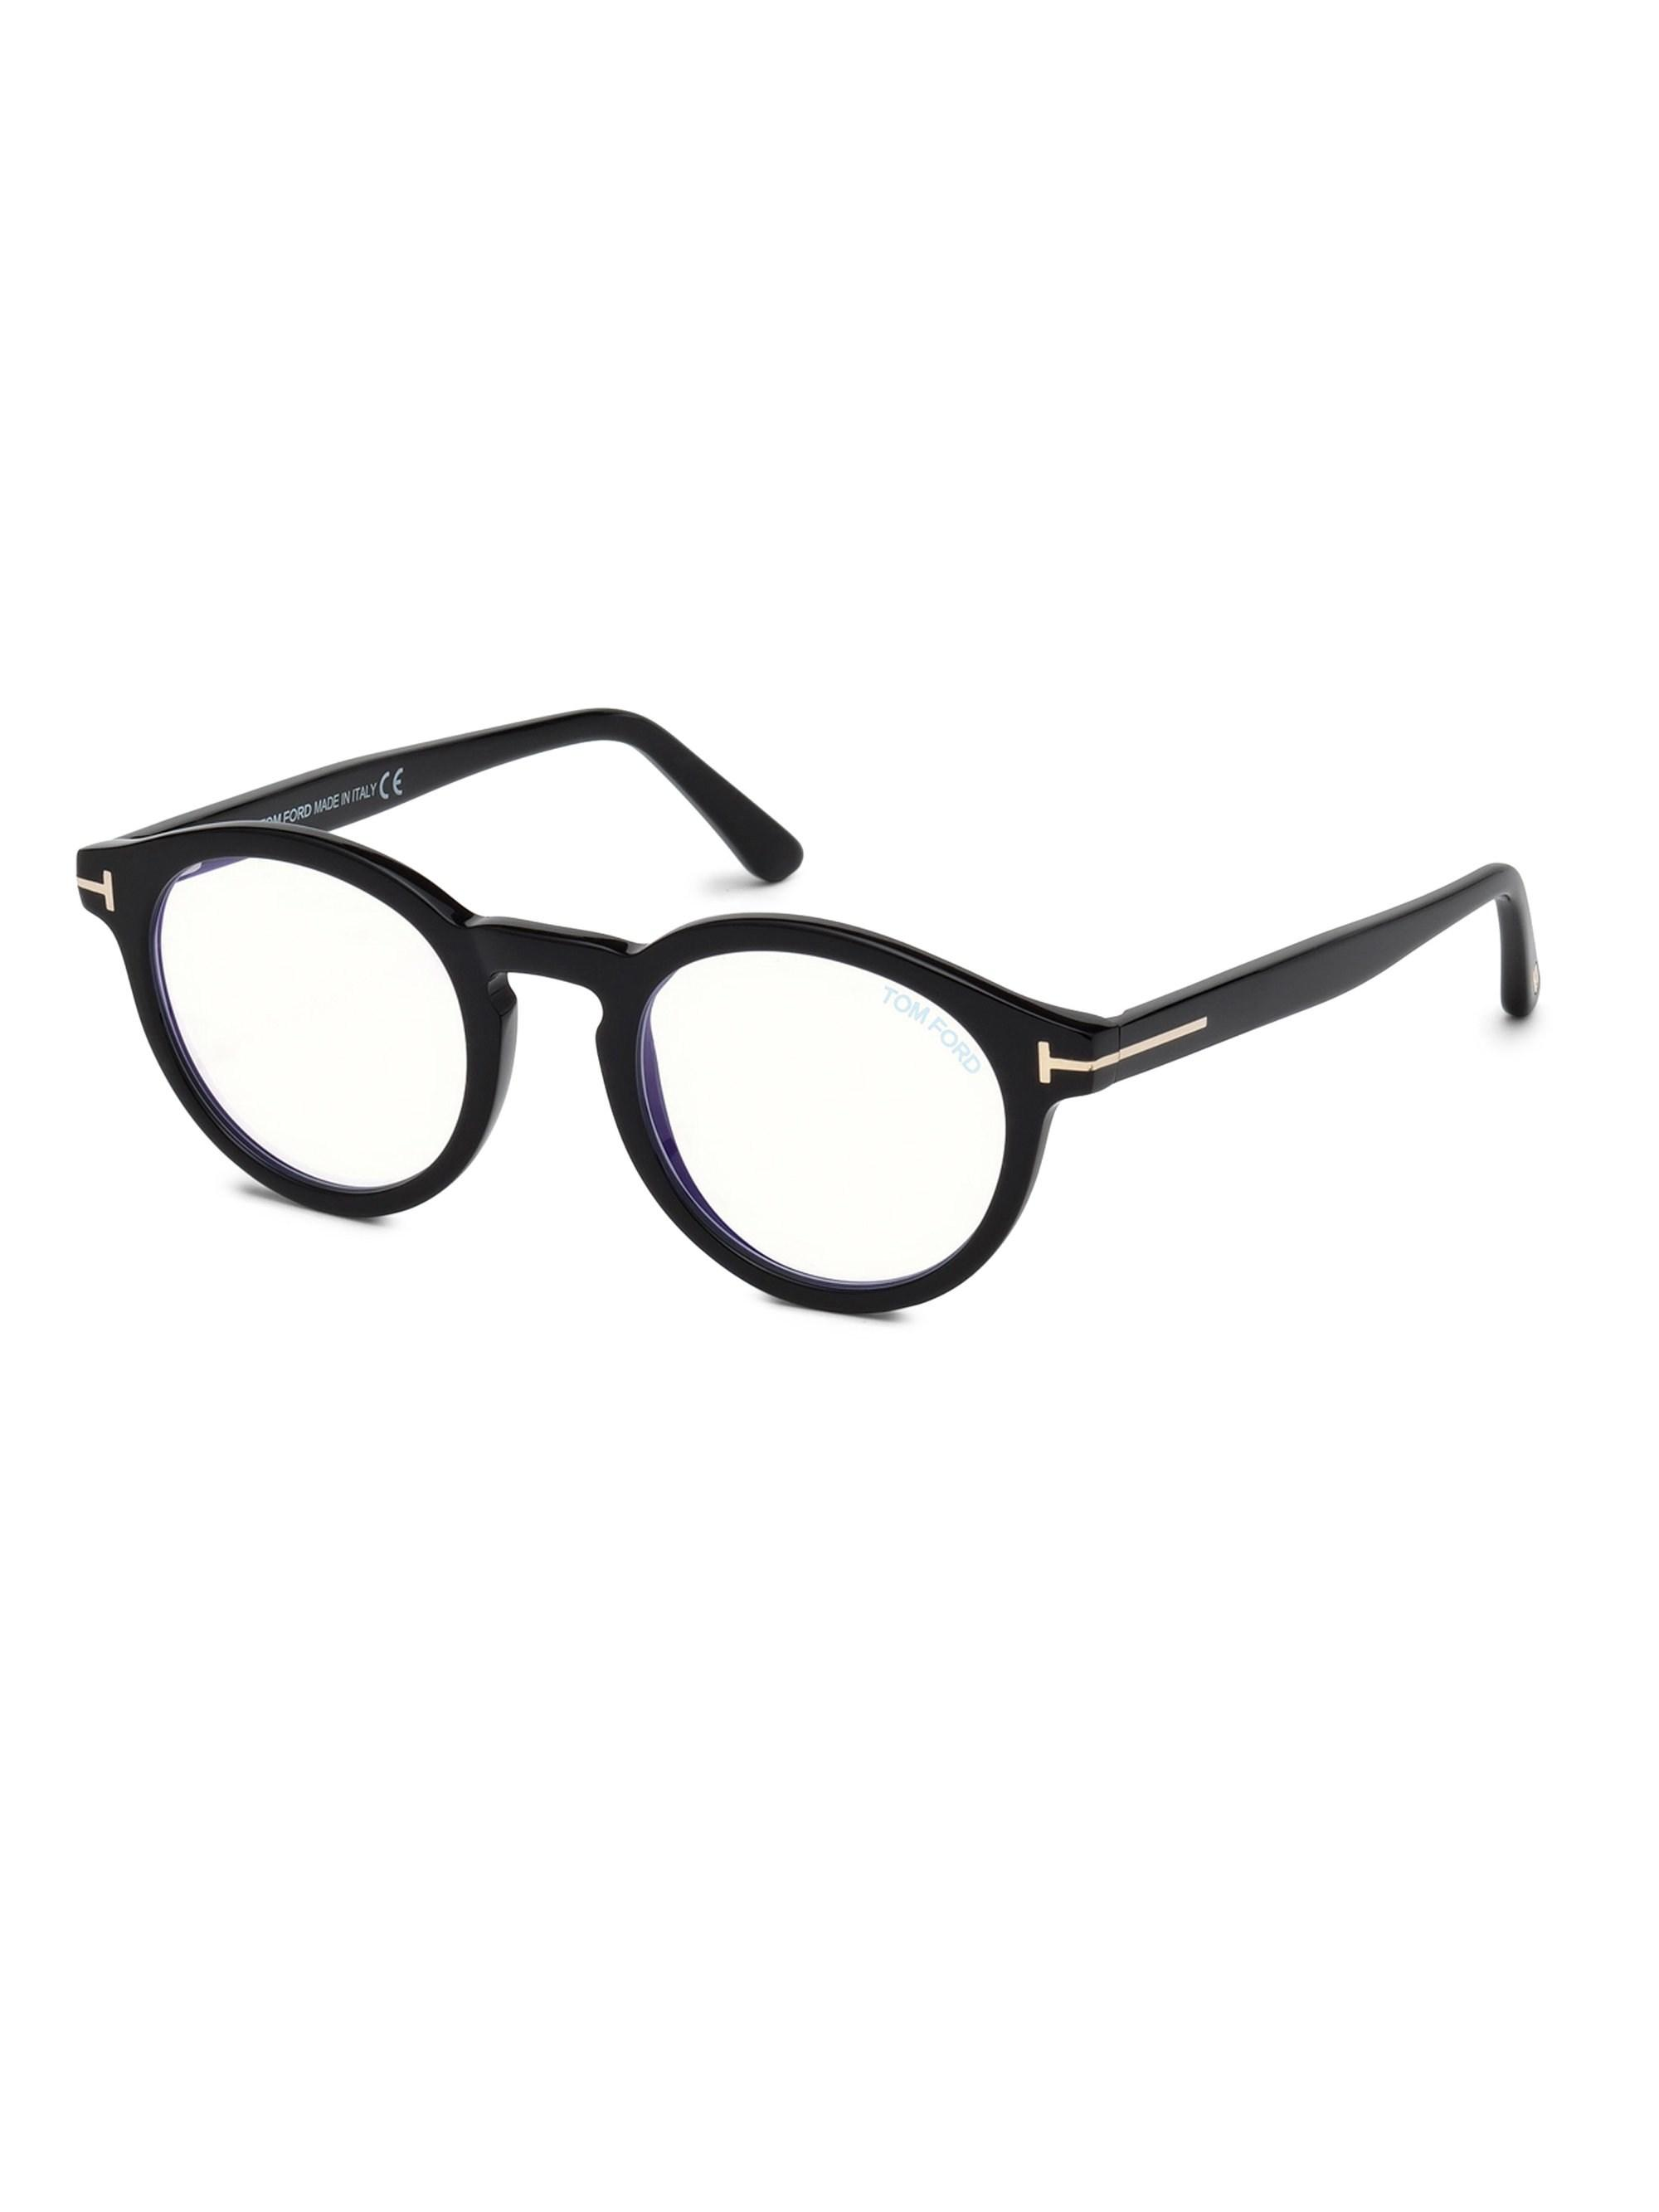 983444f8c2 Tom Ford - Black 48mm Round Optical Glasses for Men - Lyst. View fullscreen